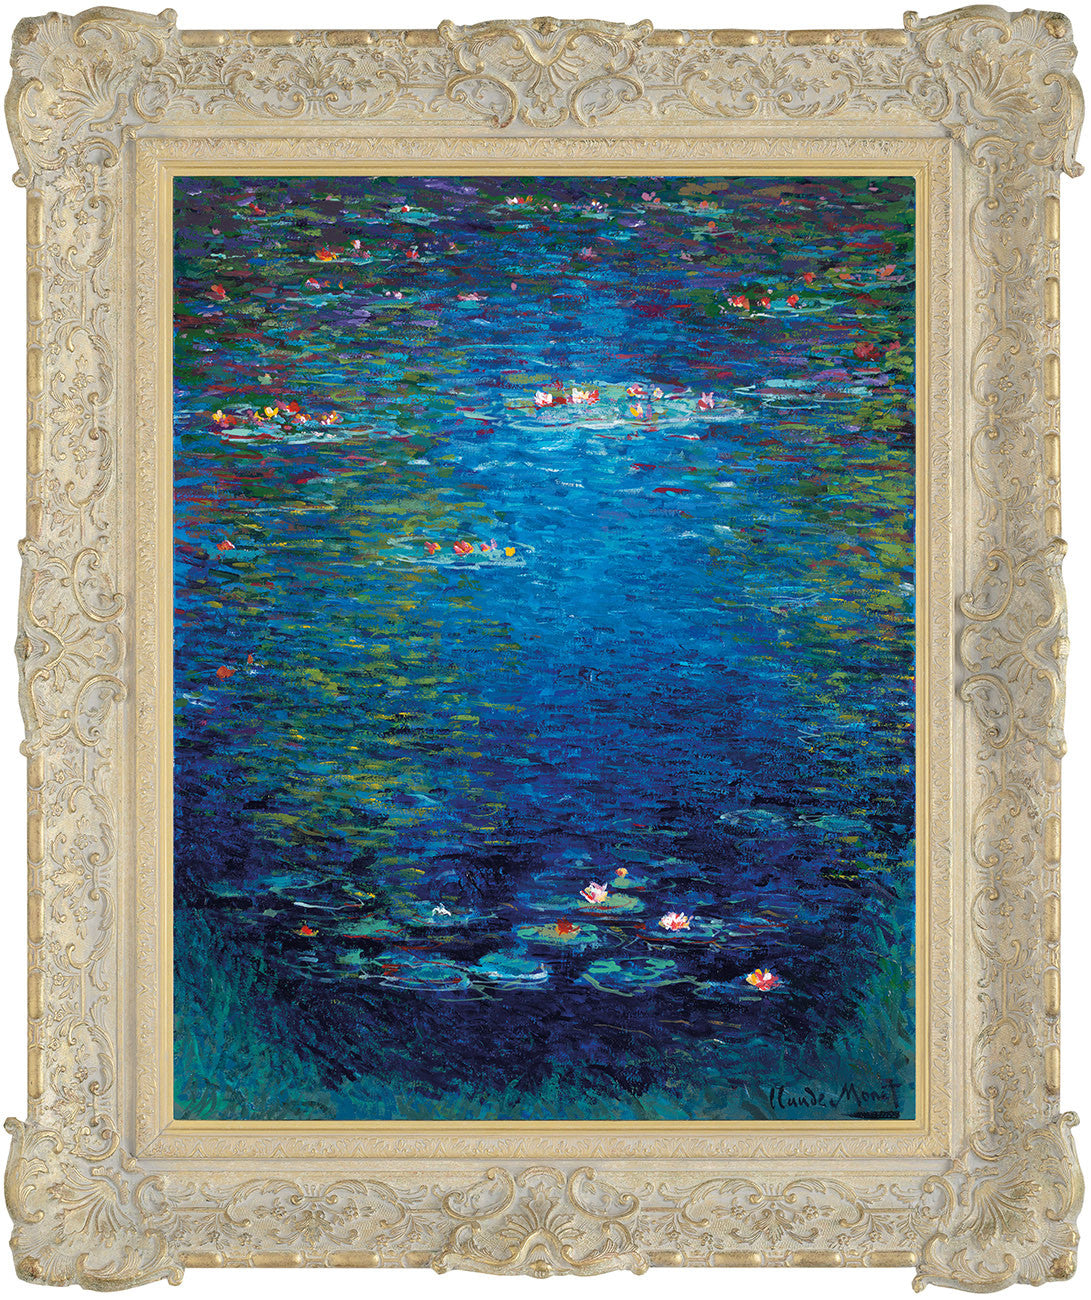 Nymphea In The Style Of Claude Monet, 1904 - 2015 - John Myatt - Antidote Art